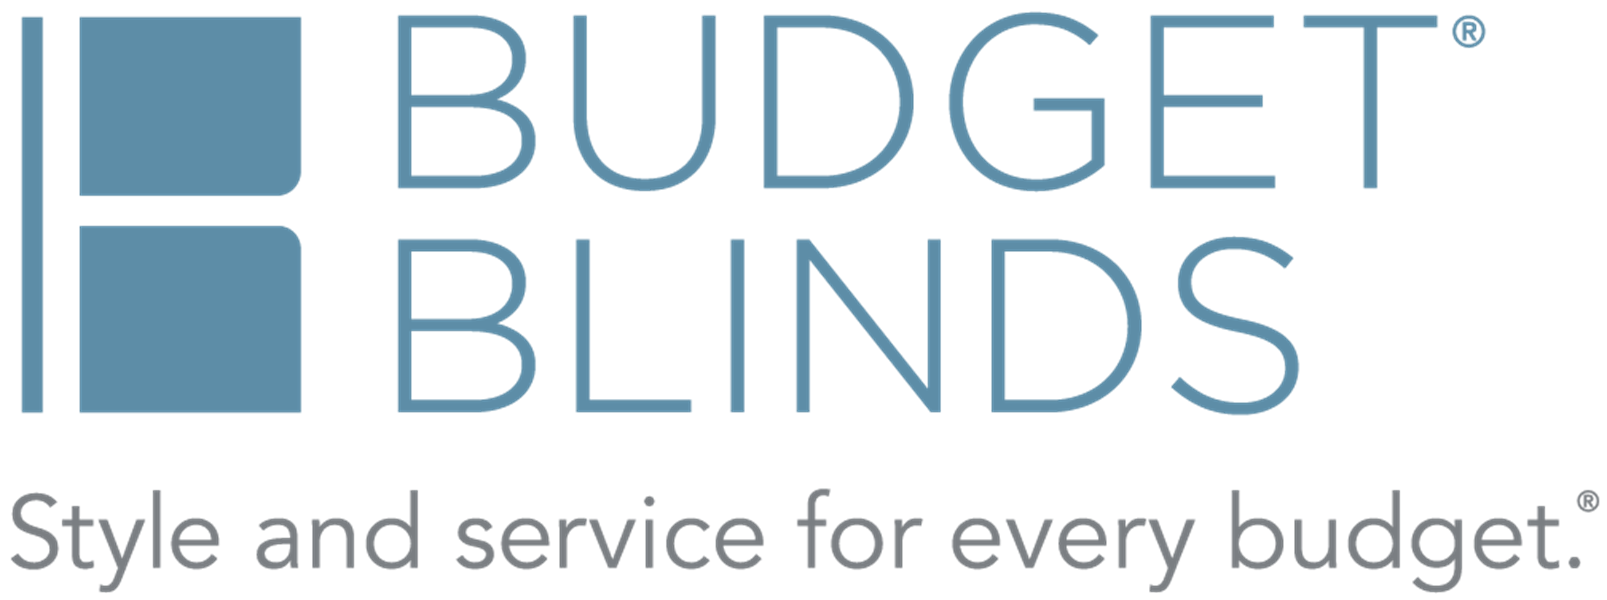 Budget Blinds of Hilton Head Island